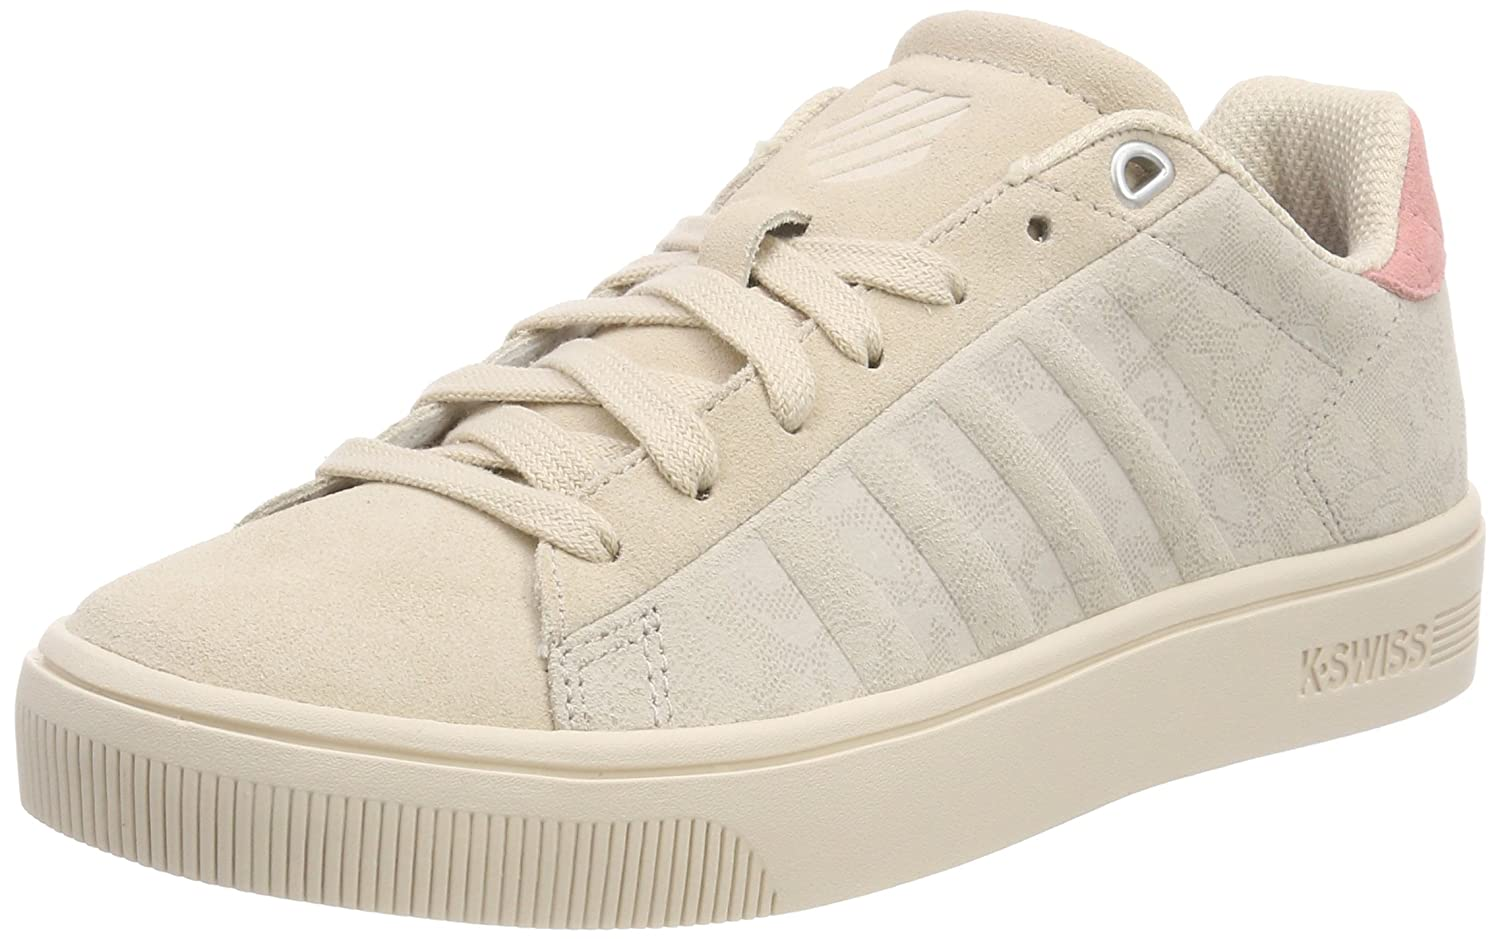 K-Swiss Damen Damen Damen Court Frasco SDE Turnschuhe  345803